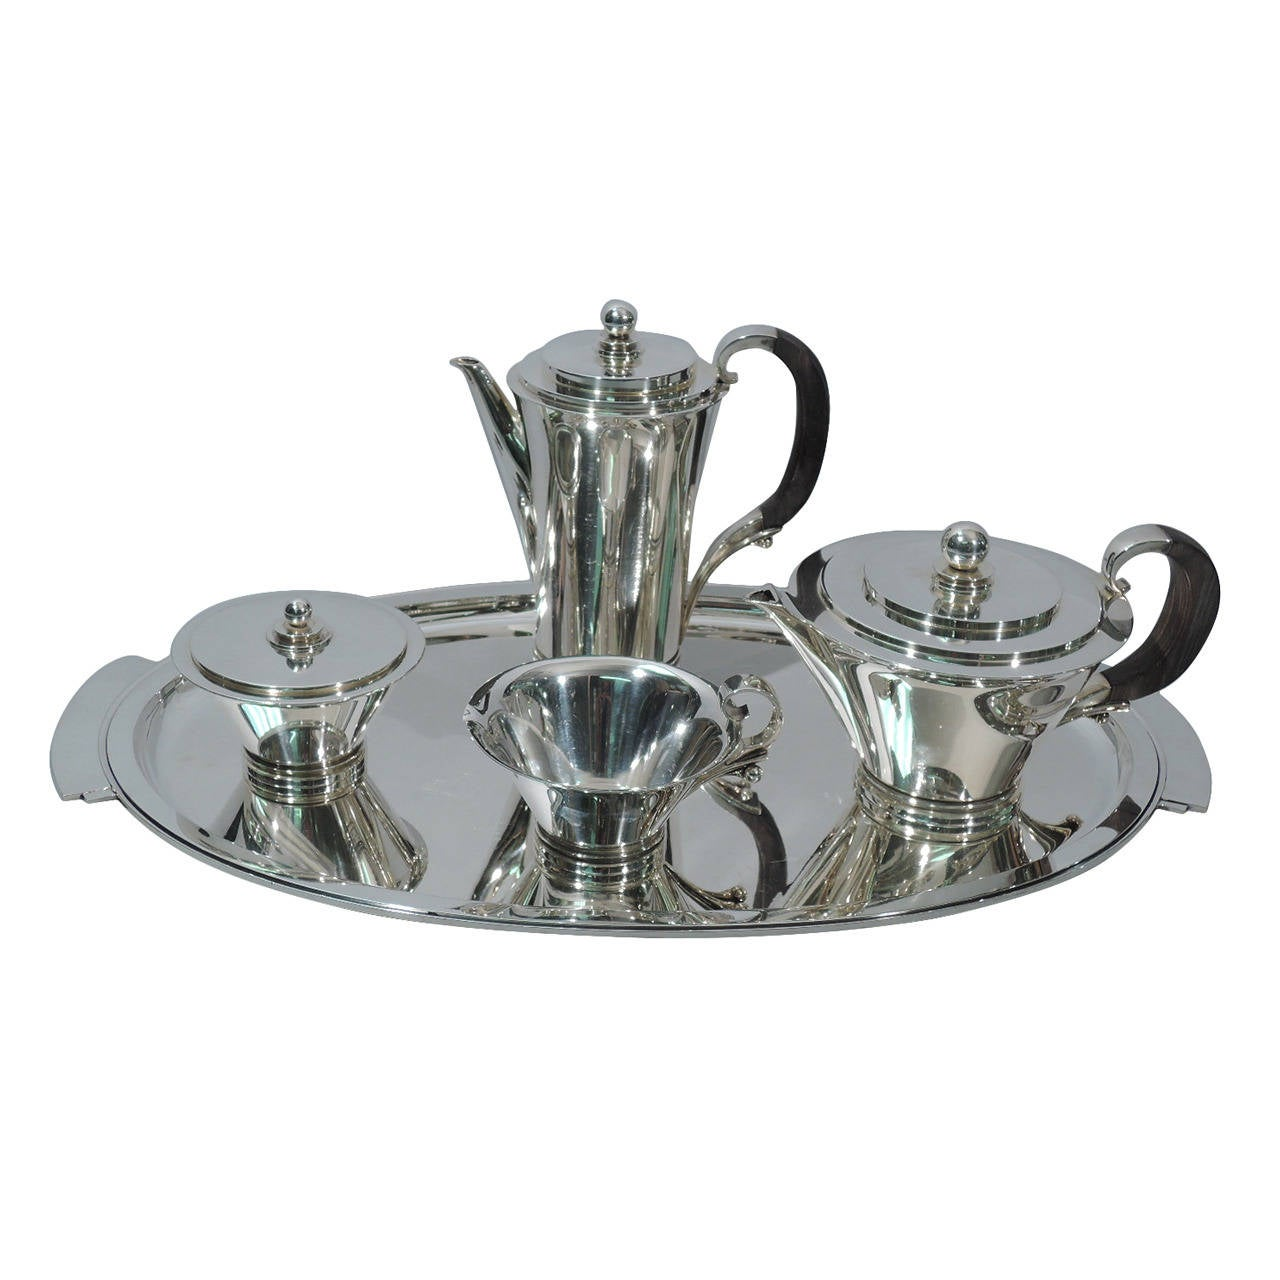 georg jensen pyramid silver coffee and tea service at 1stdibs. Black Bedroom Furniture Sets. Home Design Ideas